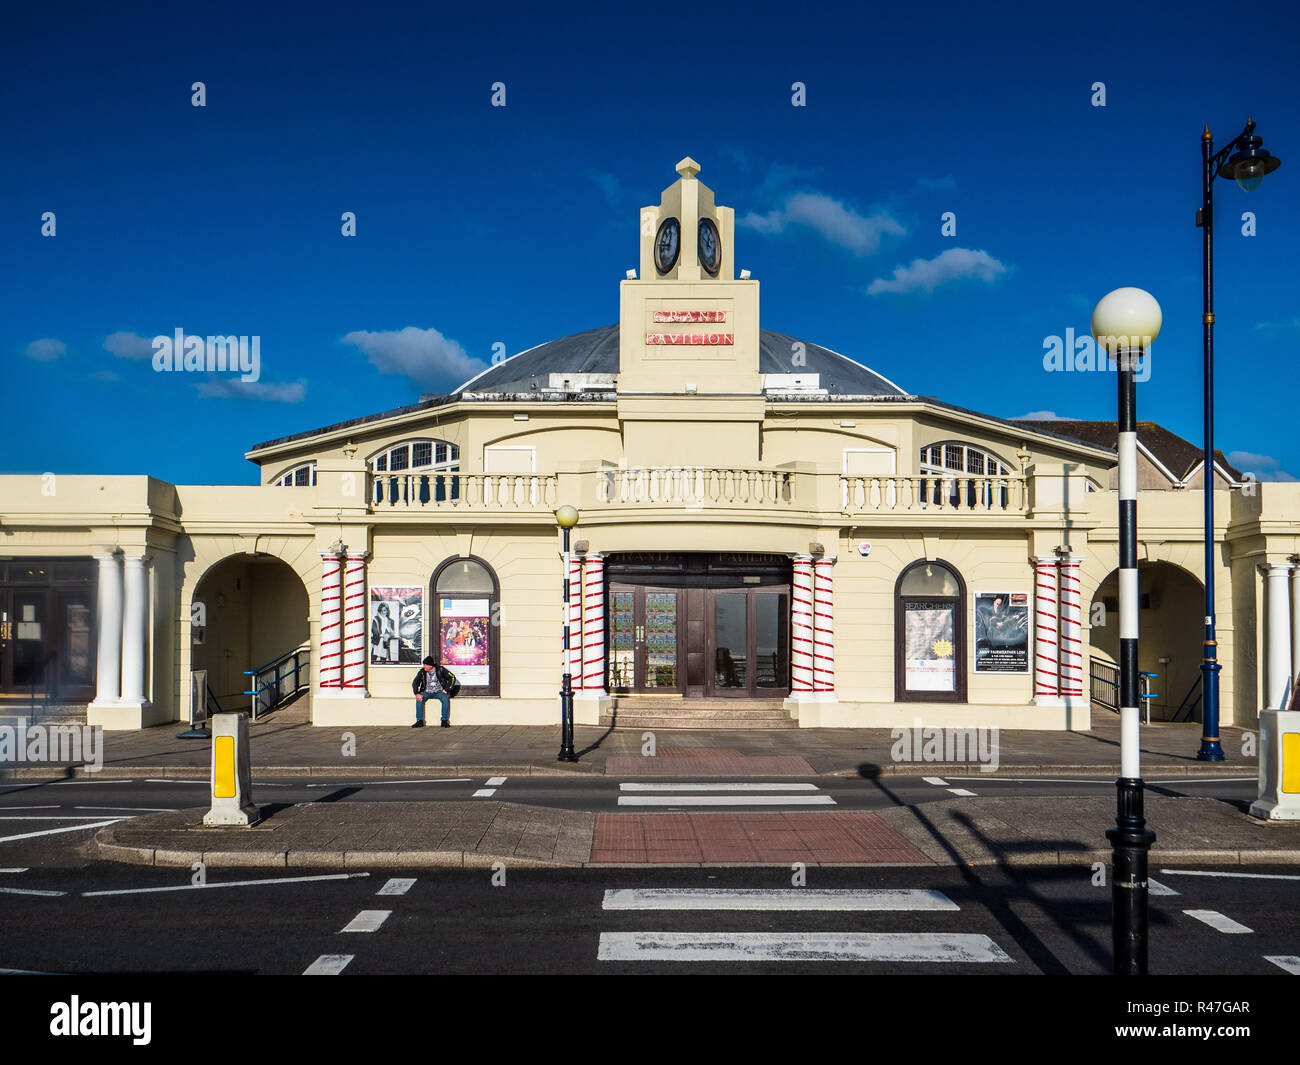 Porthcawl Grand Pavilion Theatre on the Seafront in the South Wales seaside resort of Porthcawl, Opened 1932. - Stock Image